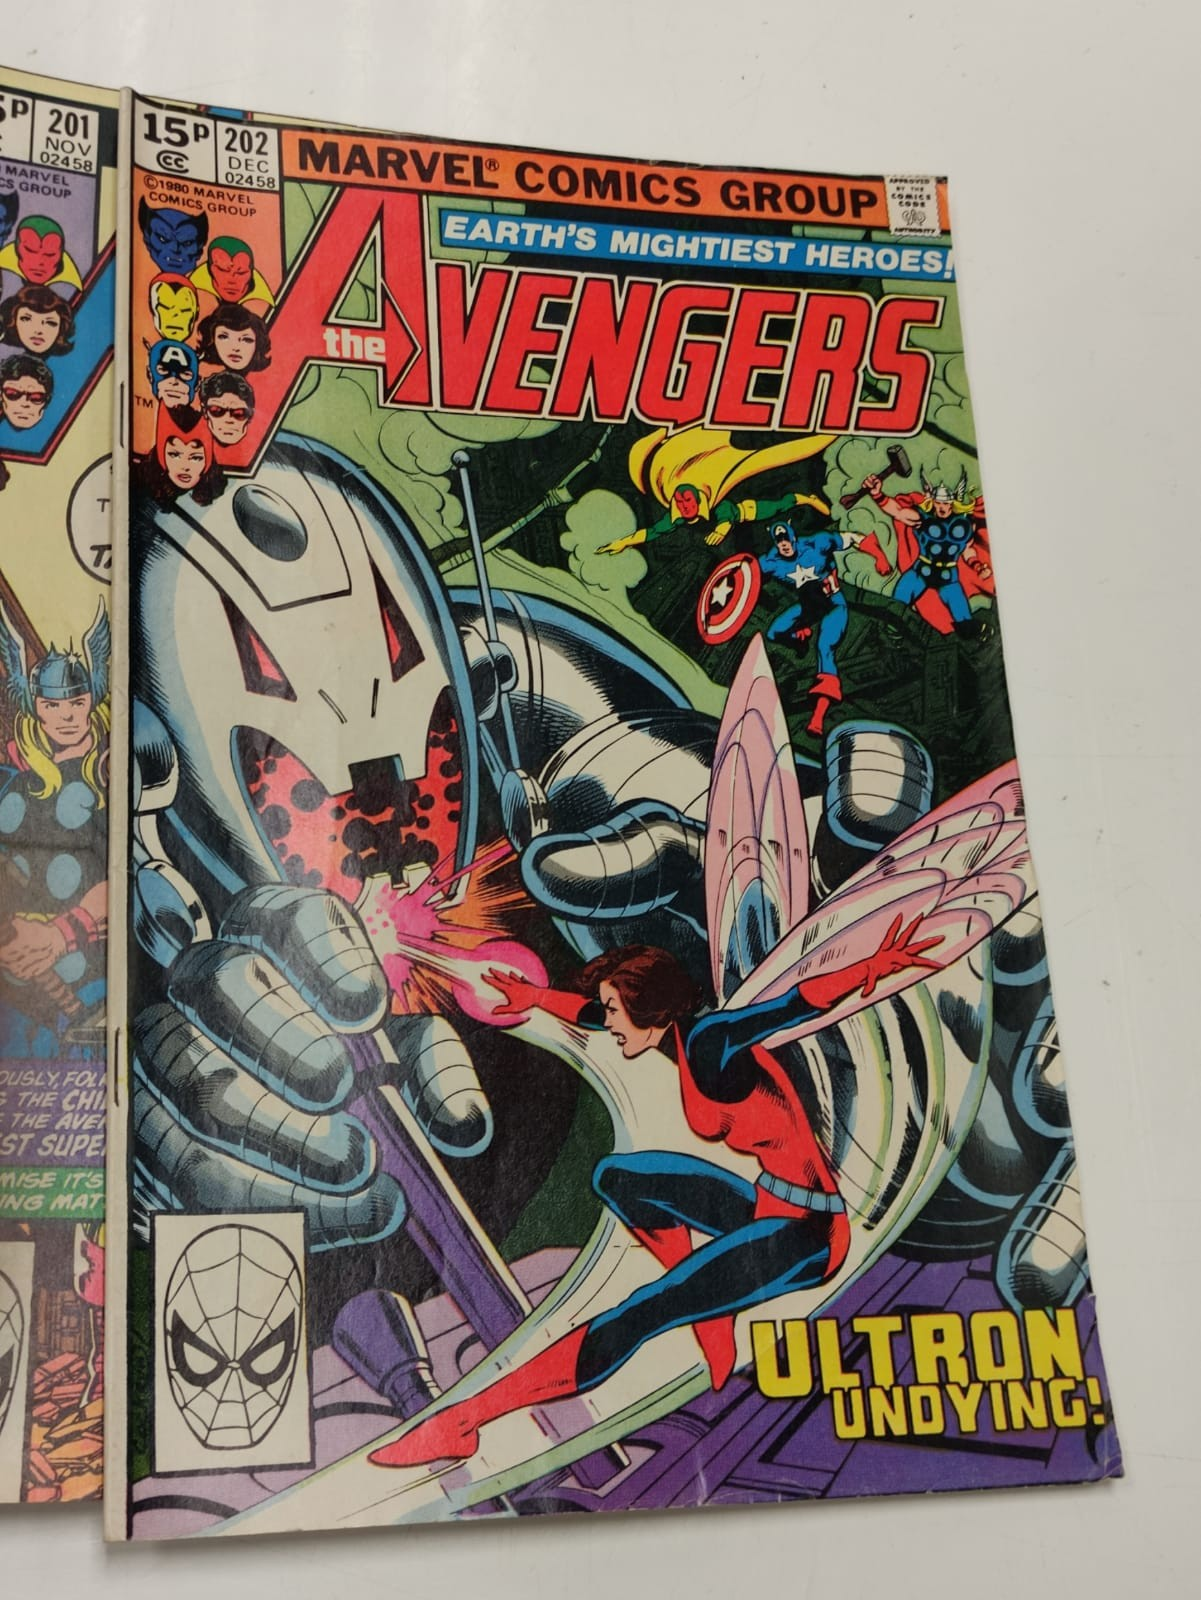 17 editions of Vintage Marvel 'The Avengers' comics in very good condition. - Image 4 of 12